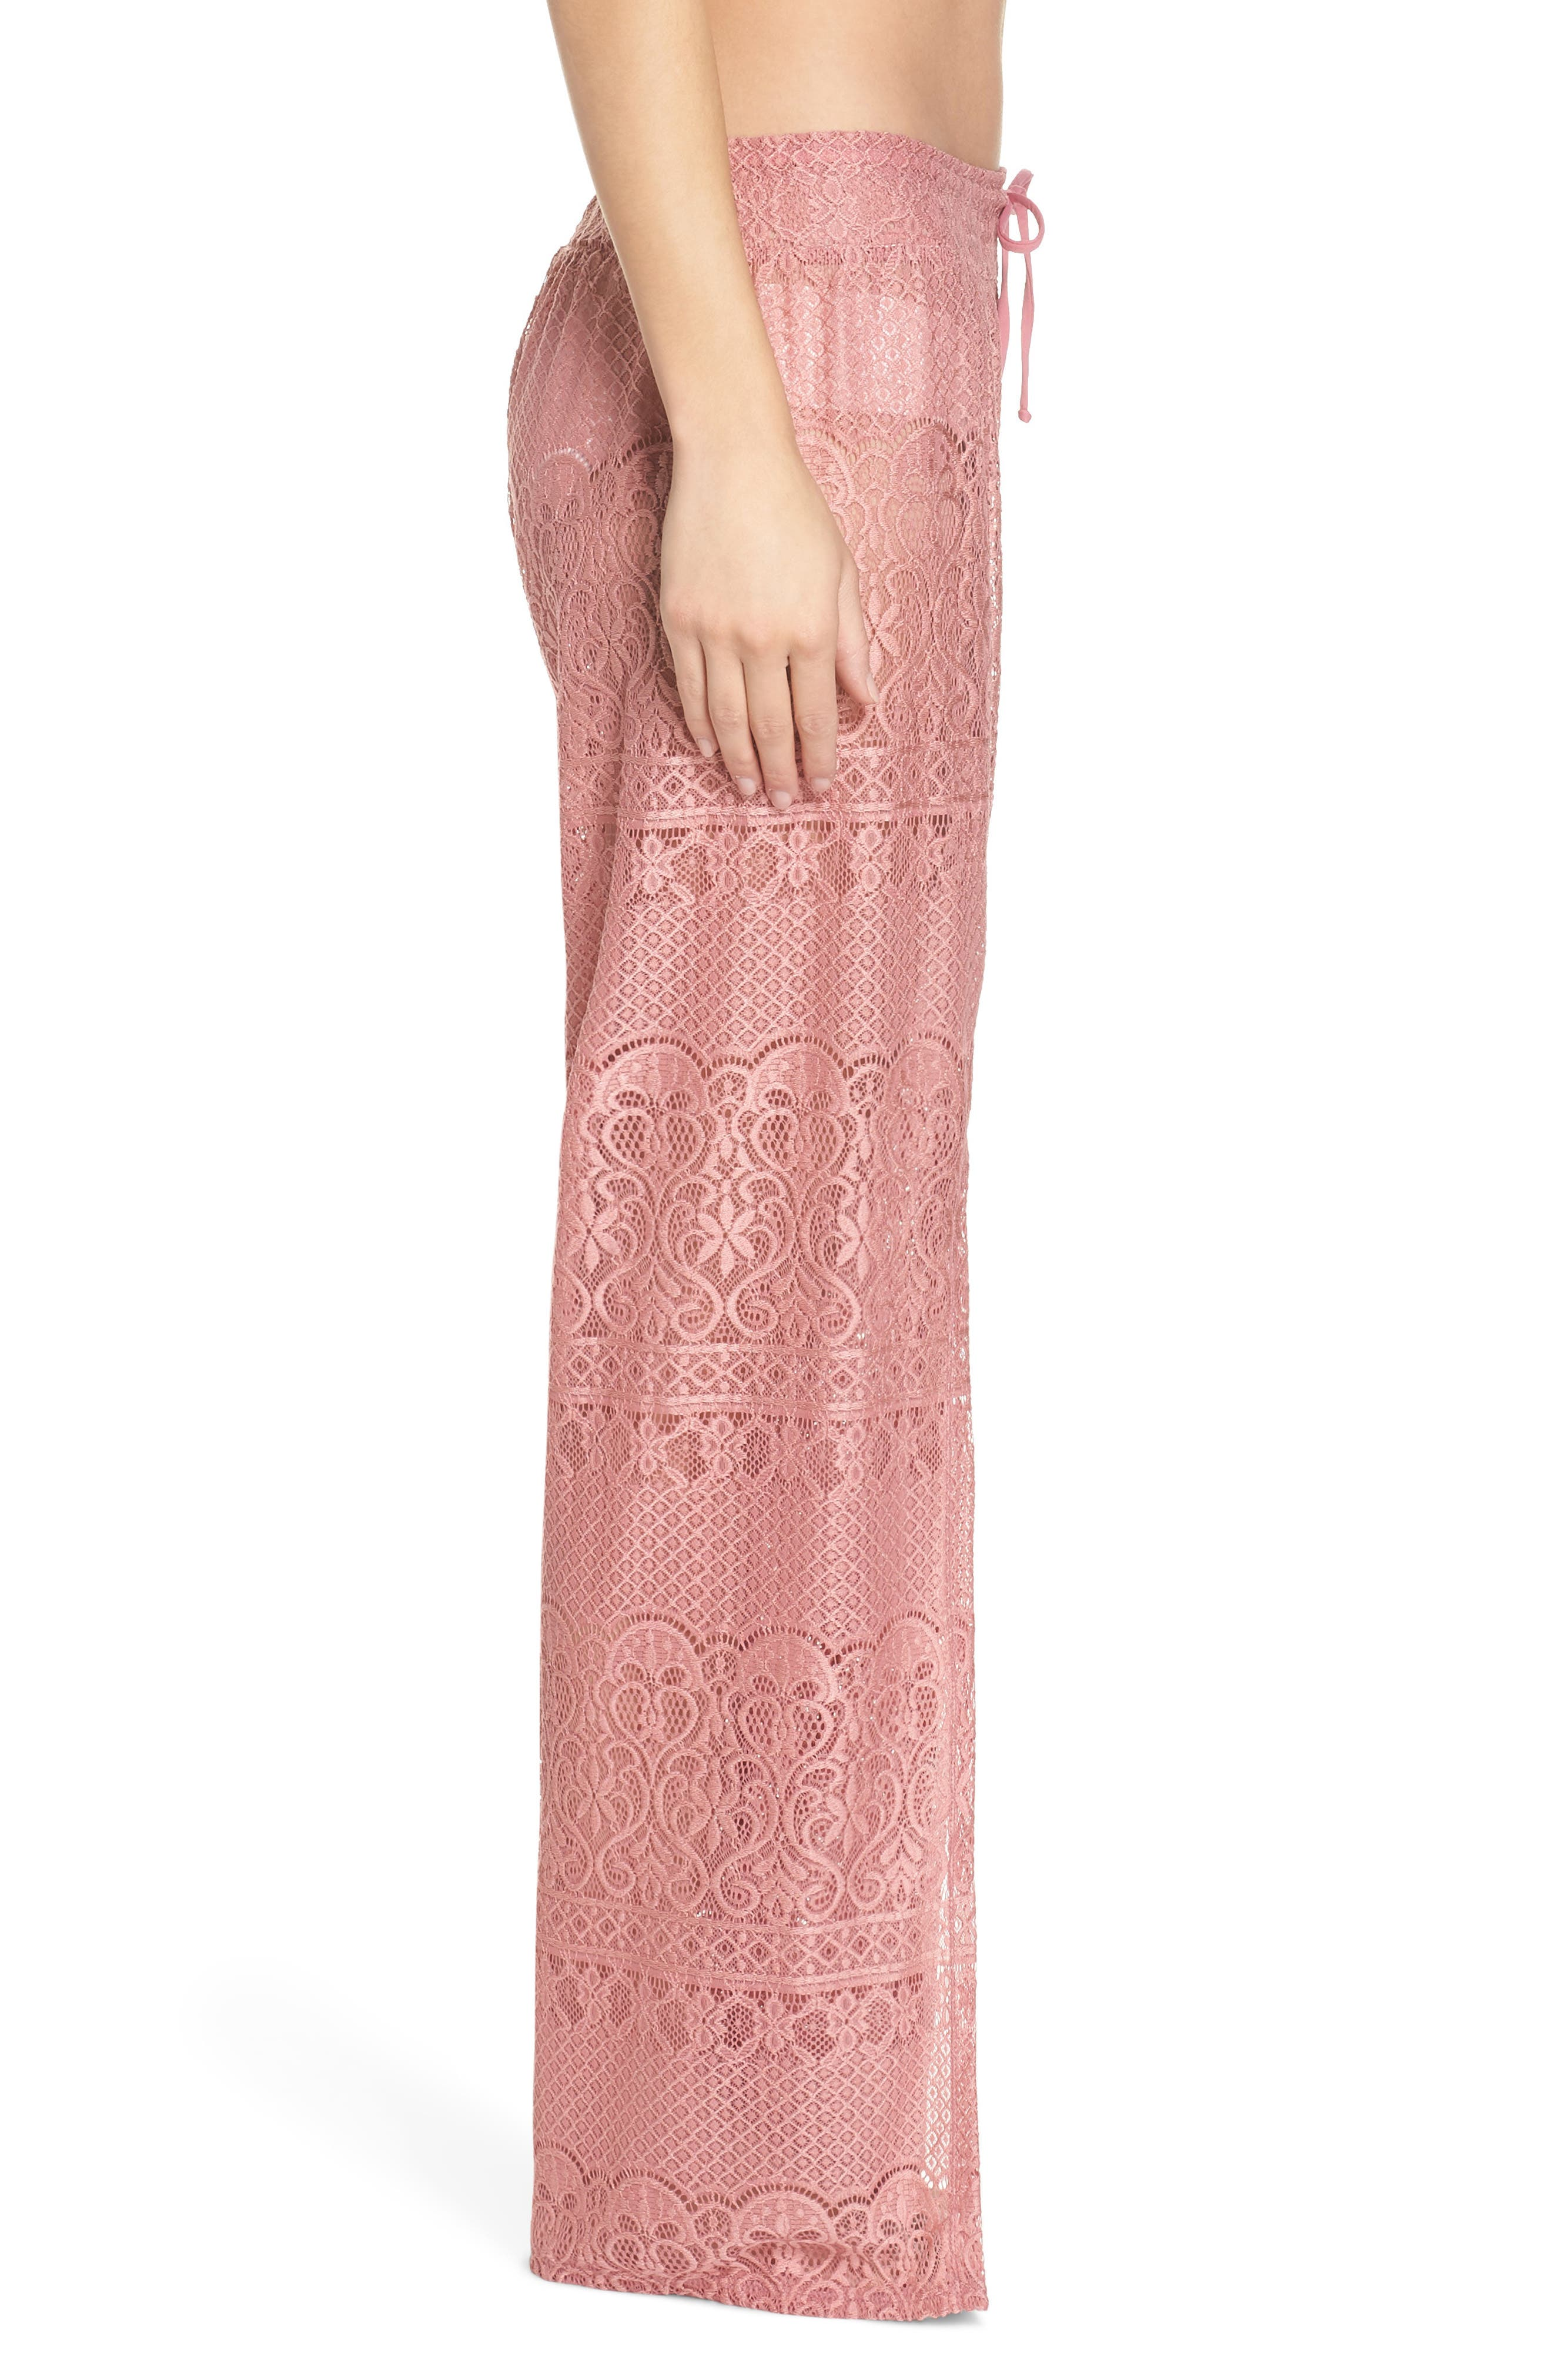 About Lace Cover-Up Pants,                             Alternate thumbnail 3, color,                             DUSTY ROSE